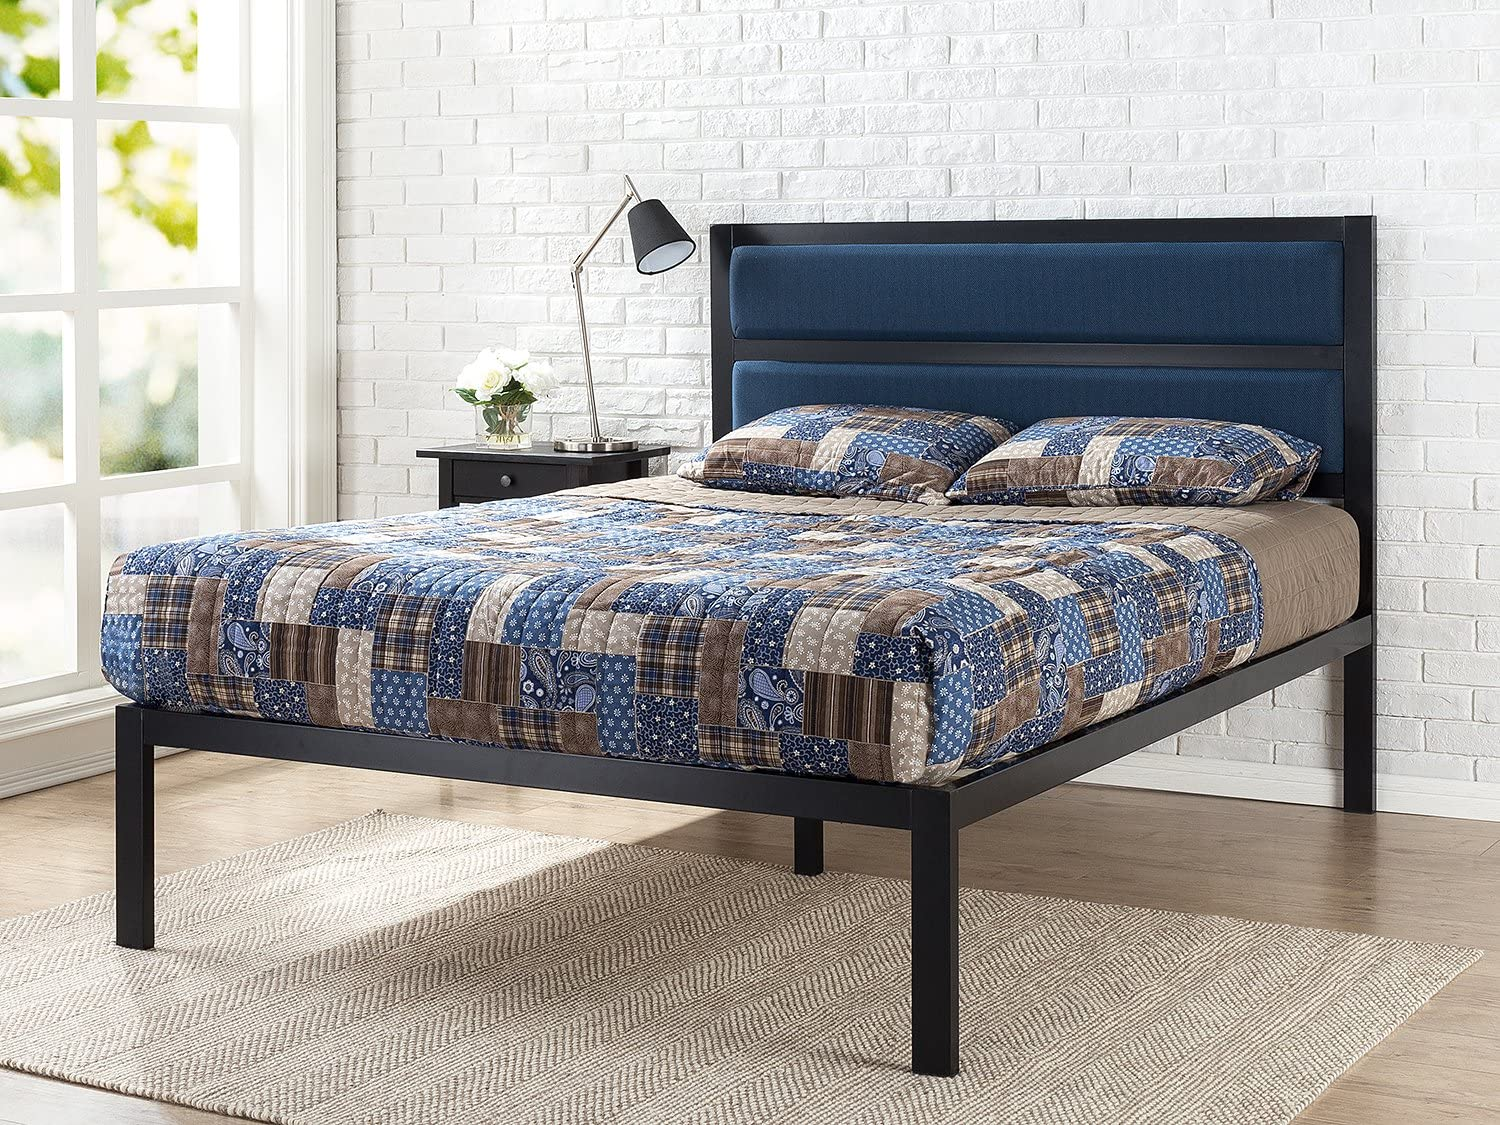 Zinus 16 Inch Platform Bed Metal Bed Frame Mattress Foundation with Tufted Navy Panel Headboard No Box Spring Needed Wood Slat Support, Queen